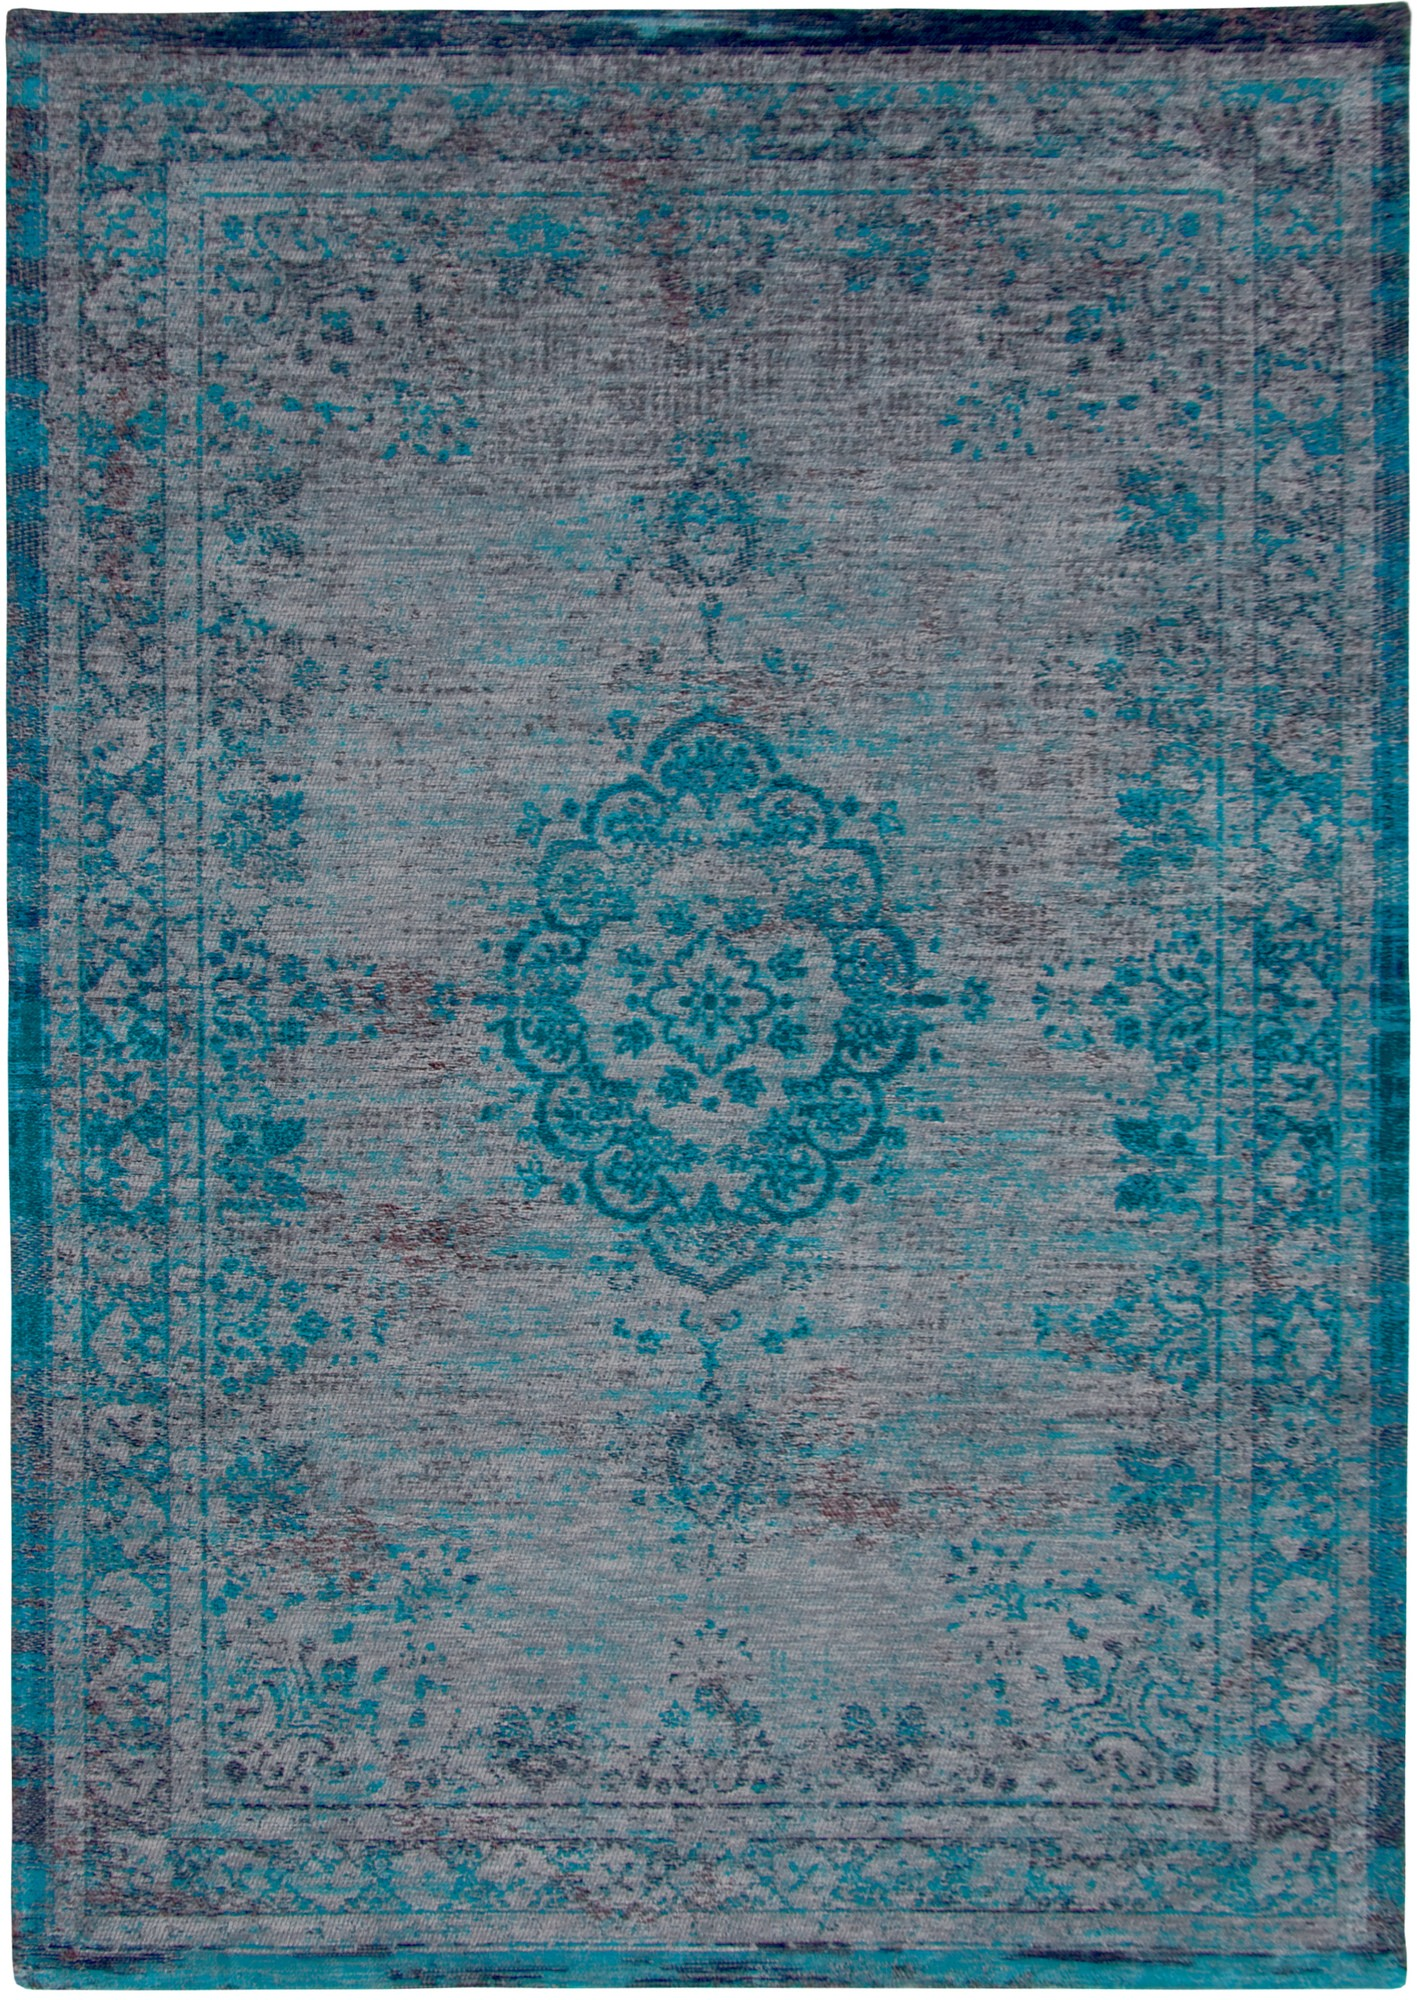 louis de poortere fading world grey turquoise 8255 rug. Black Bedroom Furniture Sets. Home Design Ideas